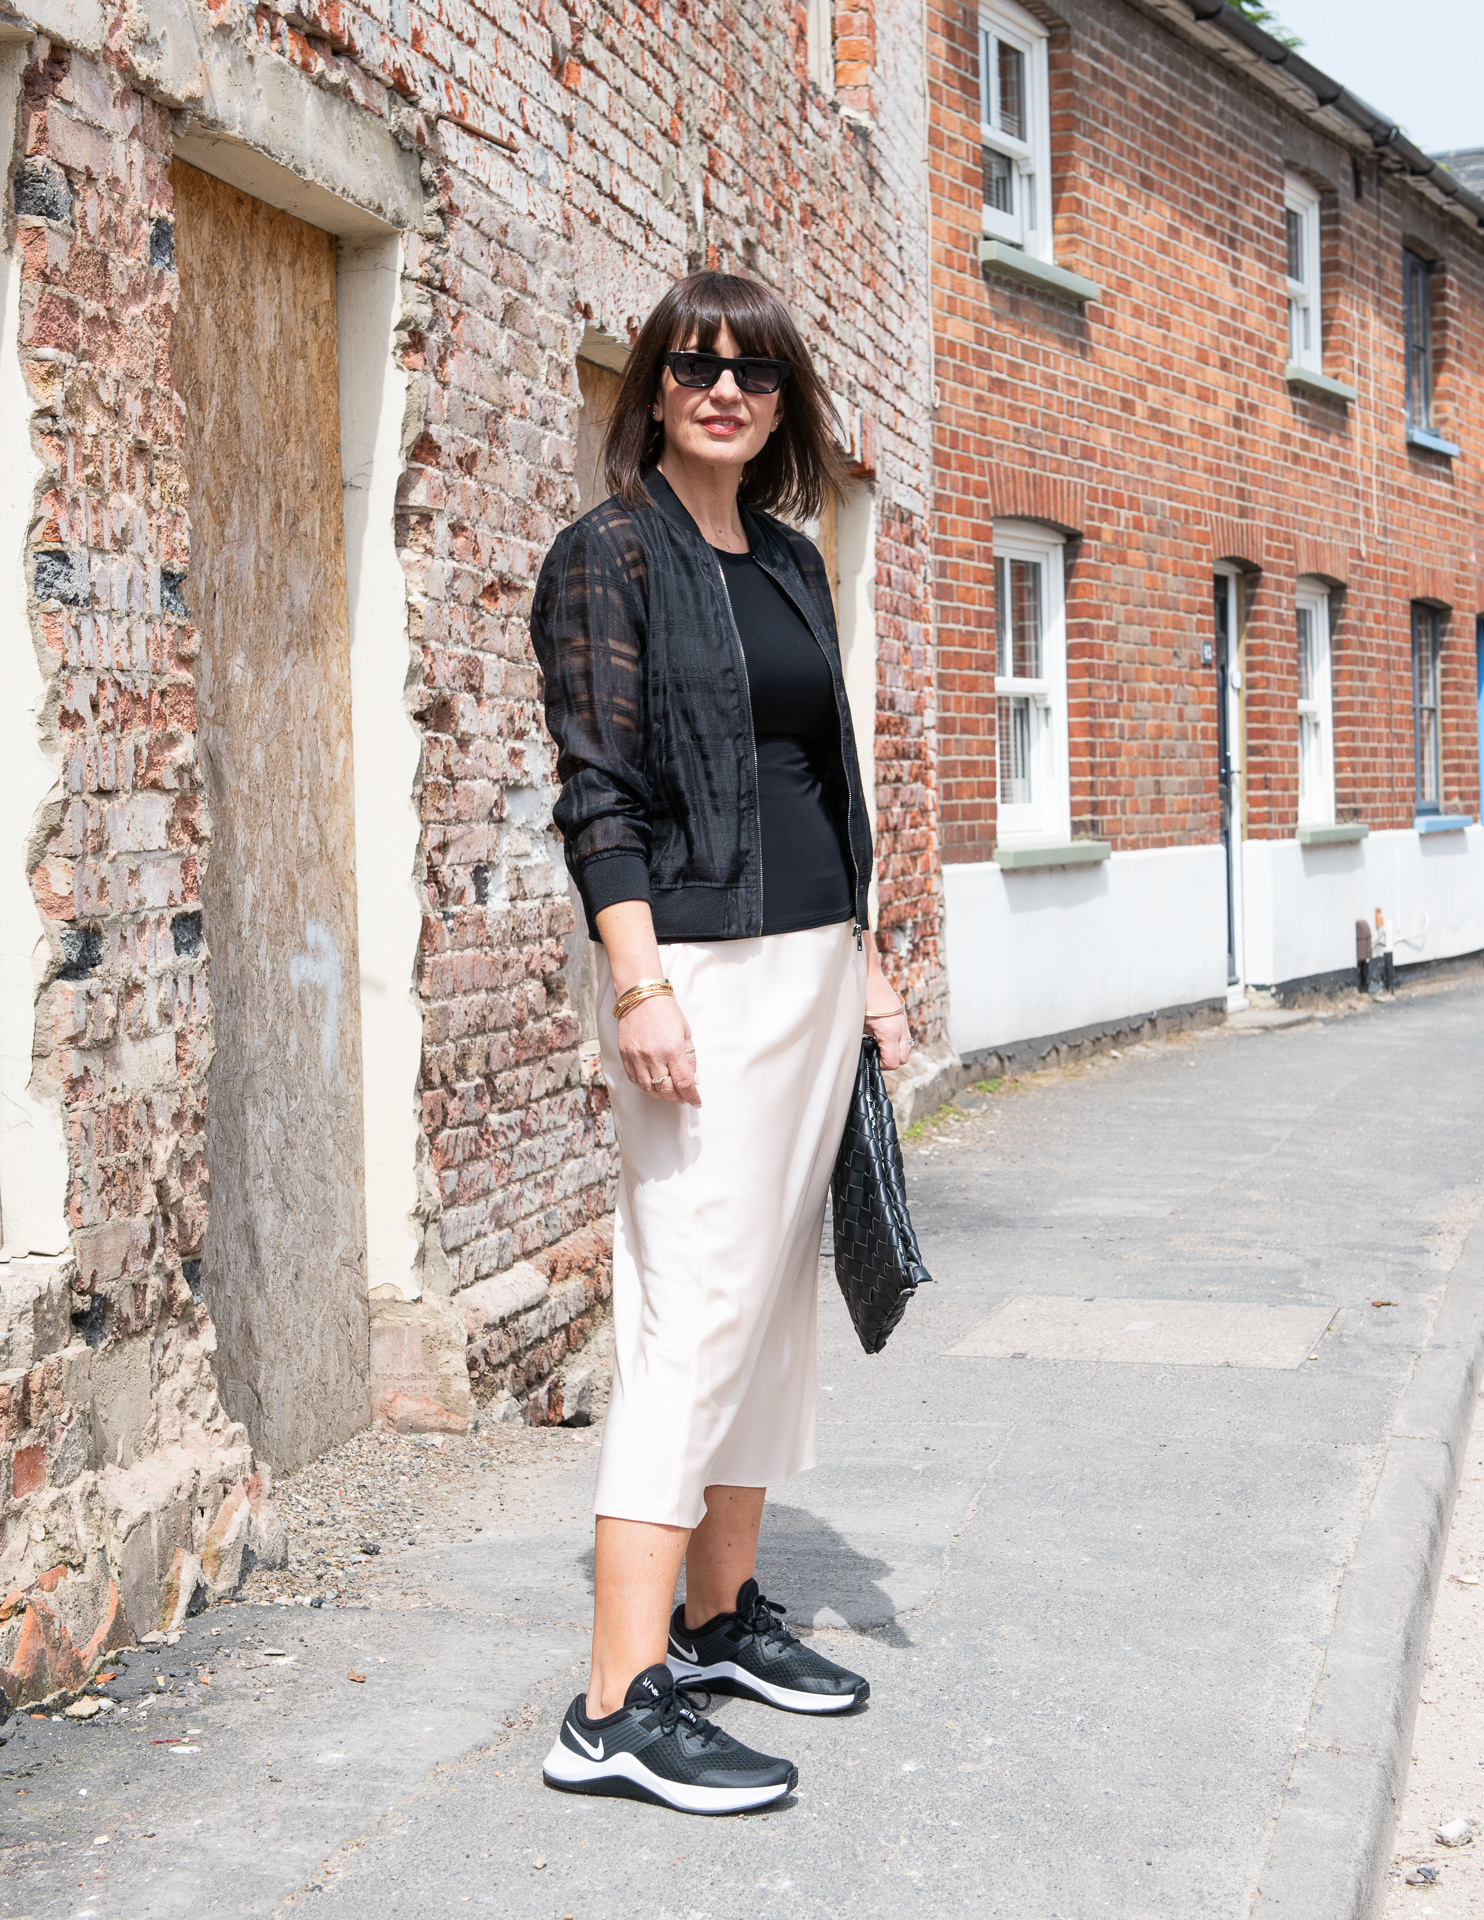 Monochrome outfit look by Lizzi Richardson